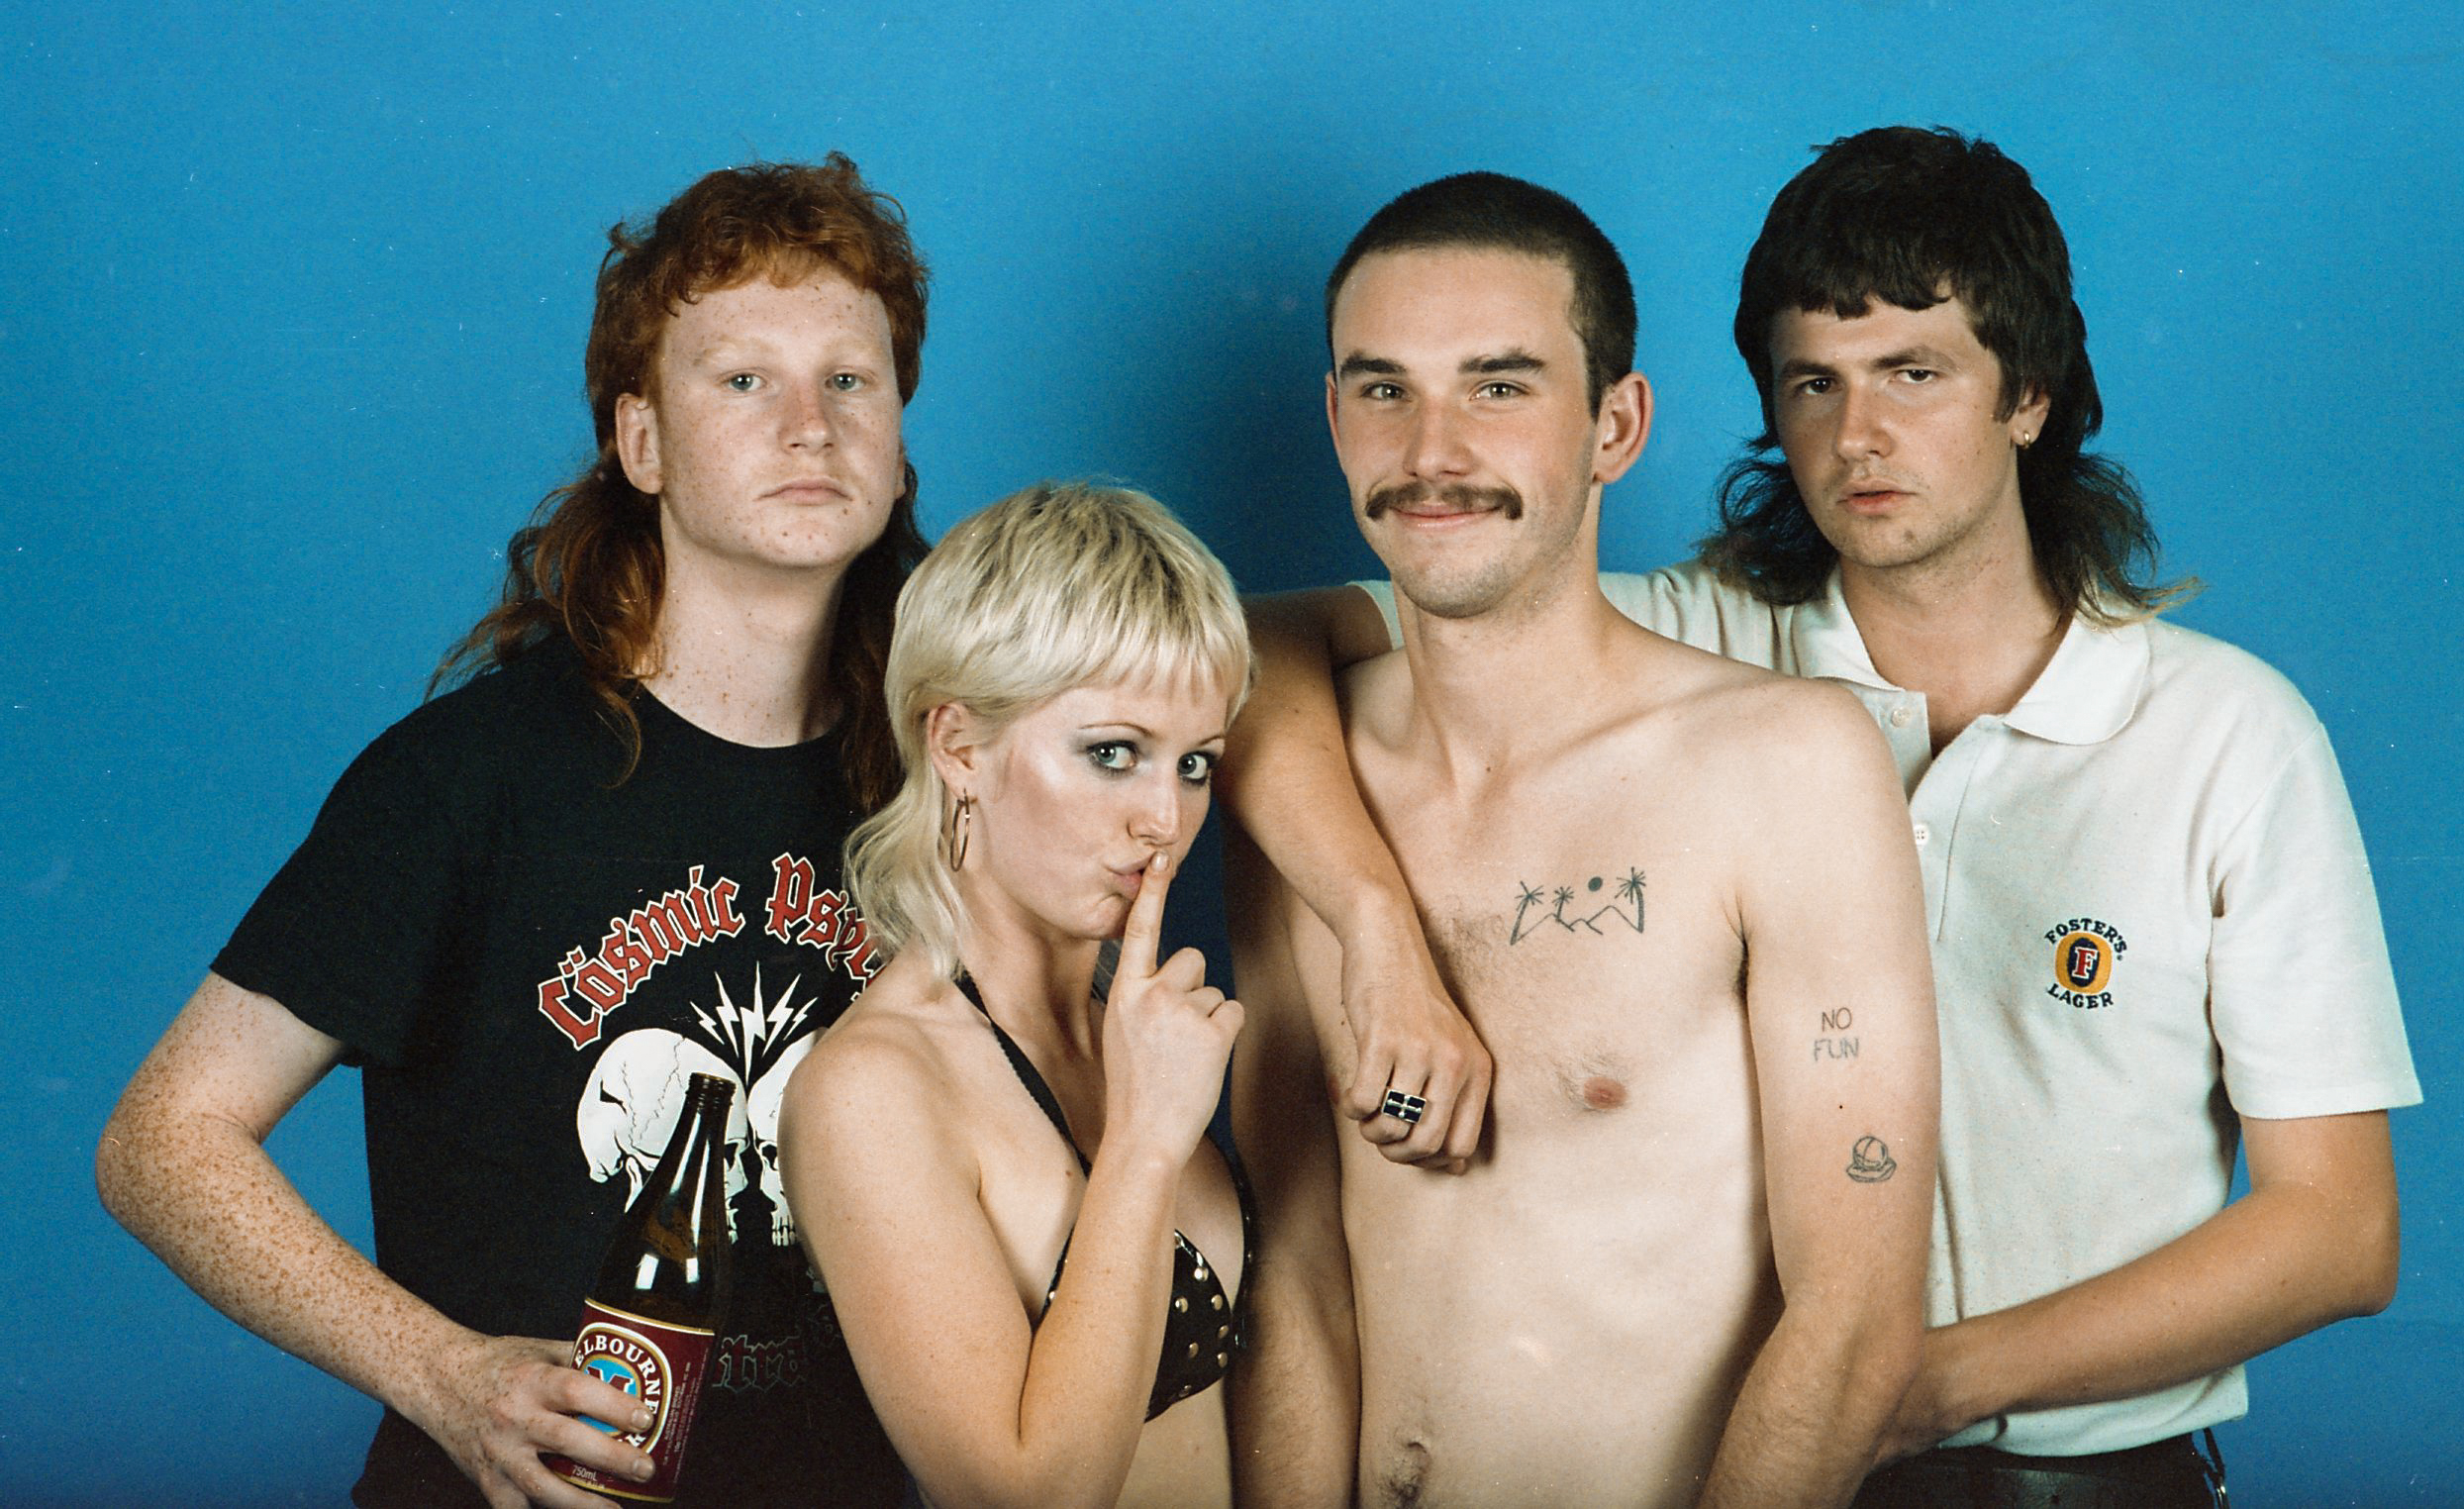 Amyl and the Sniffers - Amyl and the Sniffers 1 - fanzine